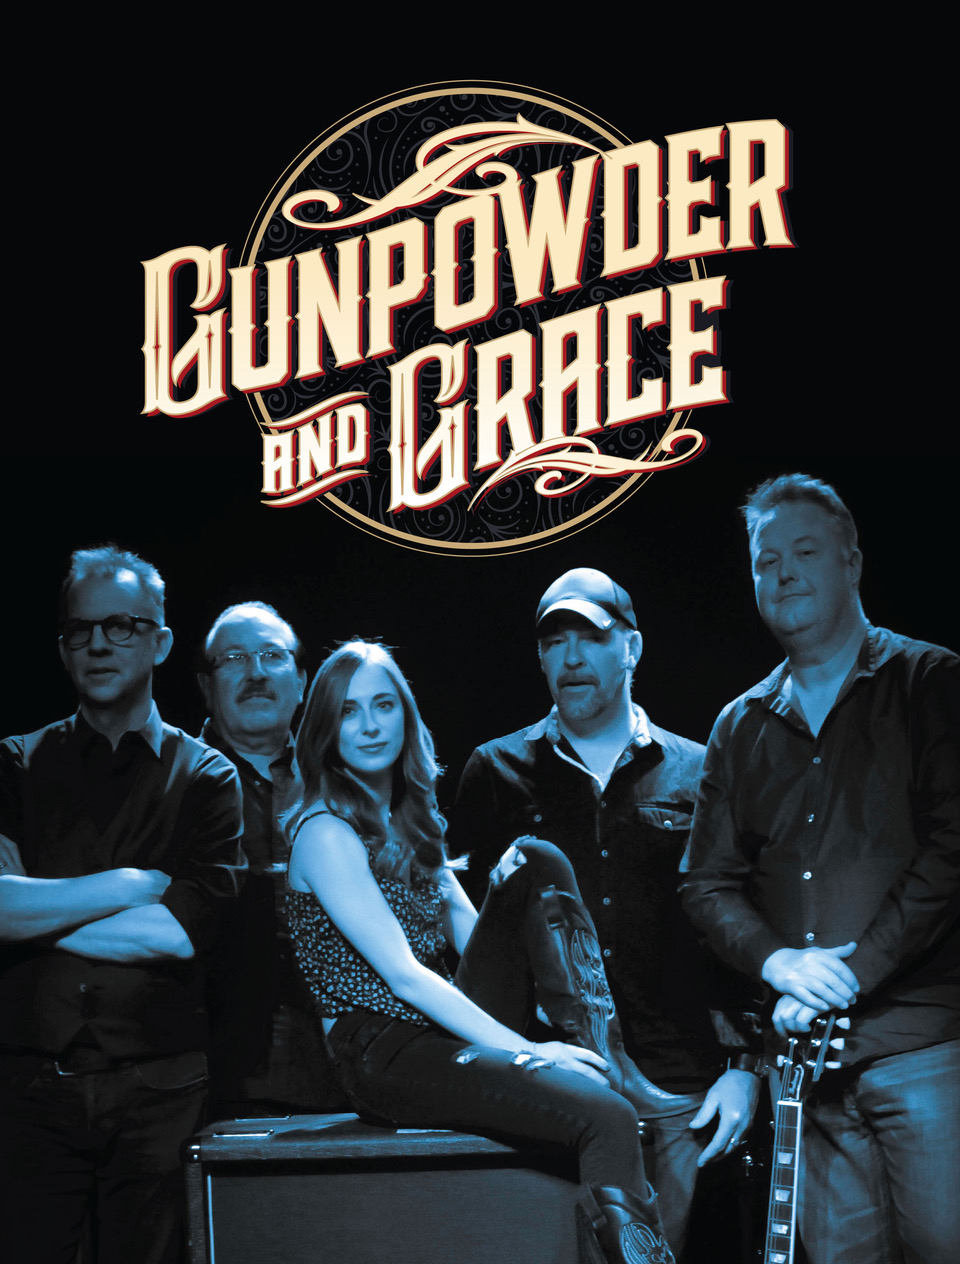 GUNPOWDER & GRACE